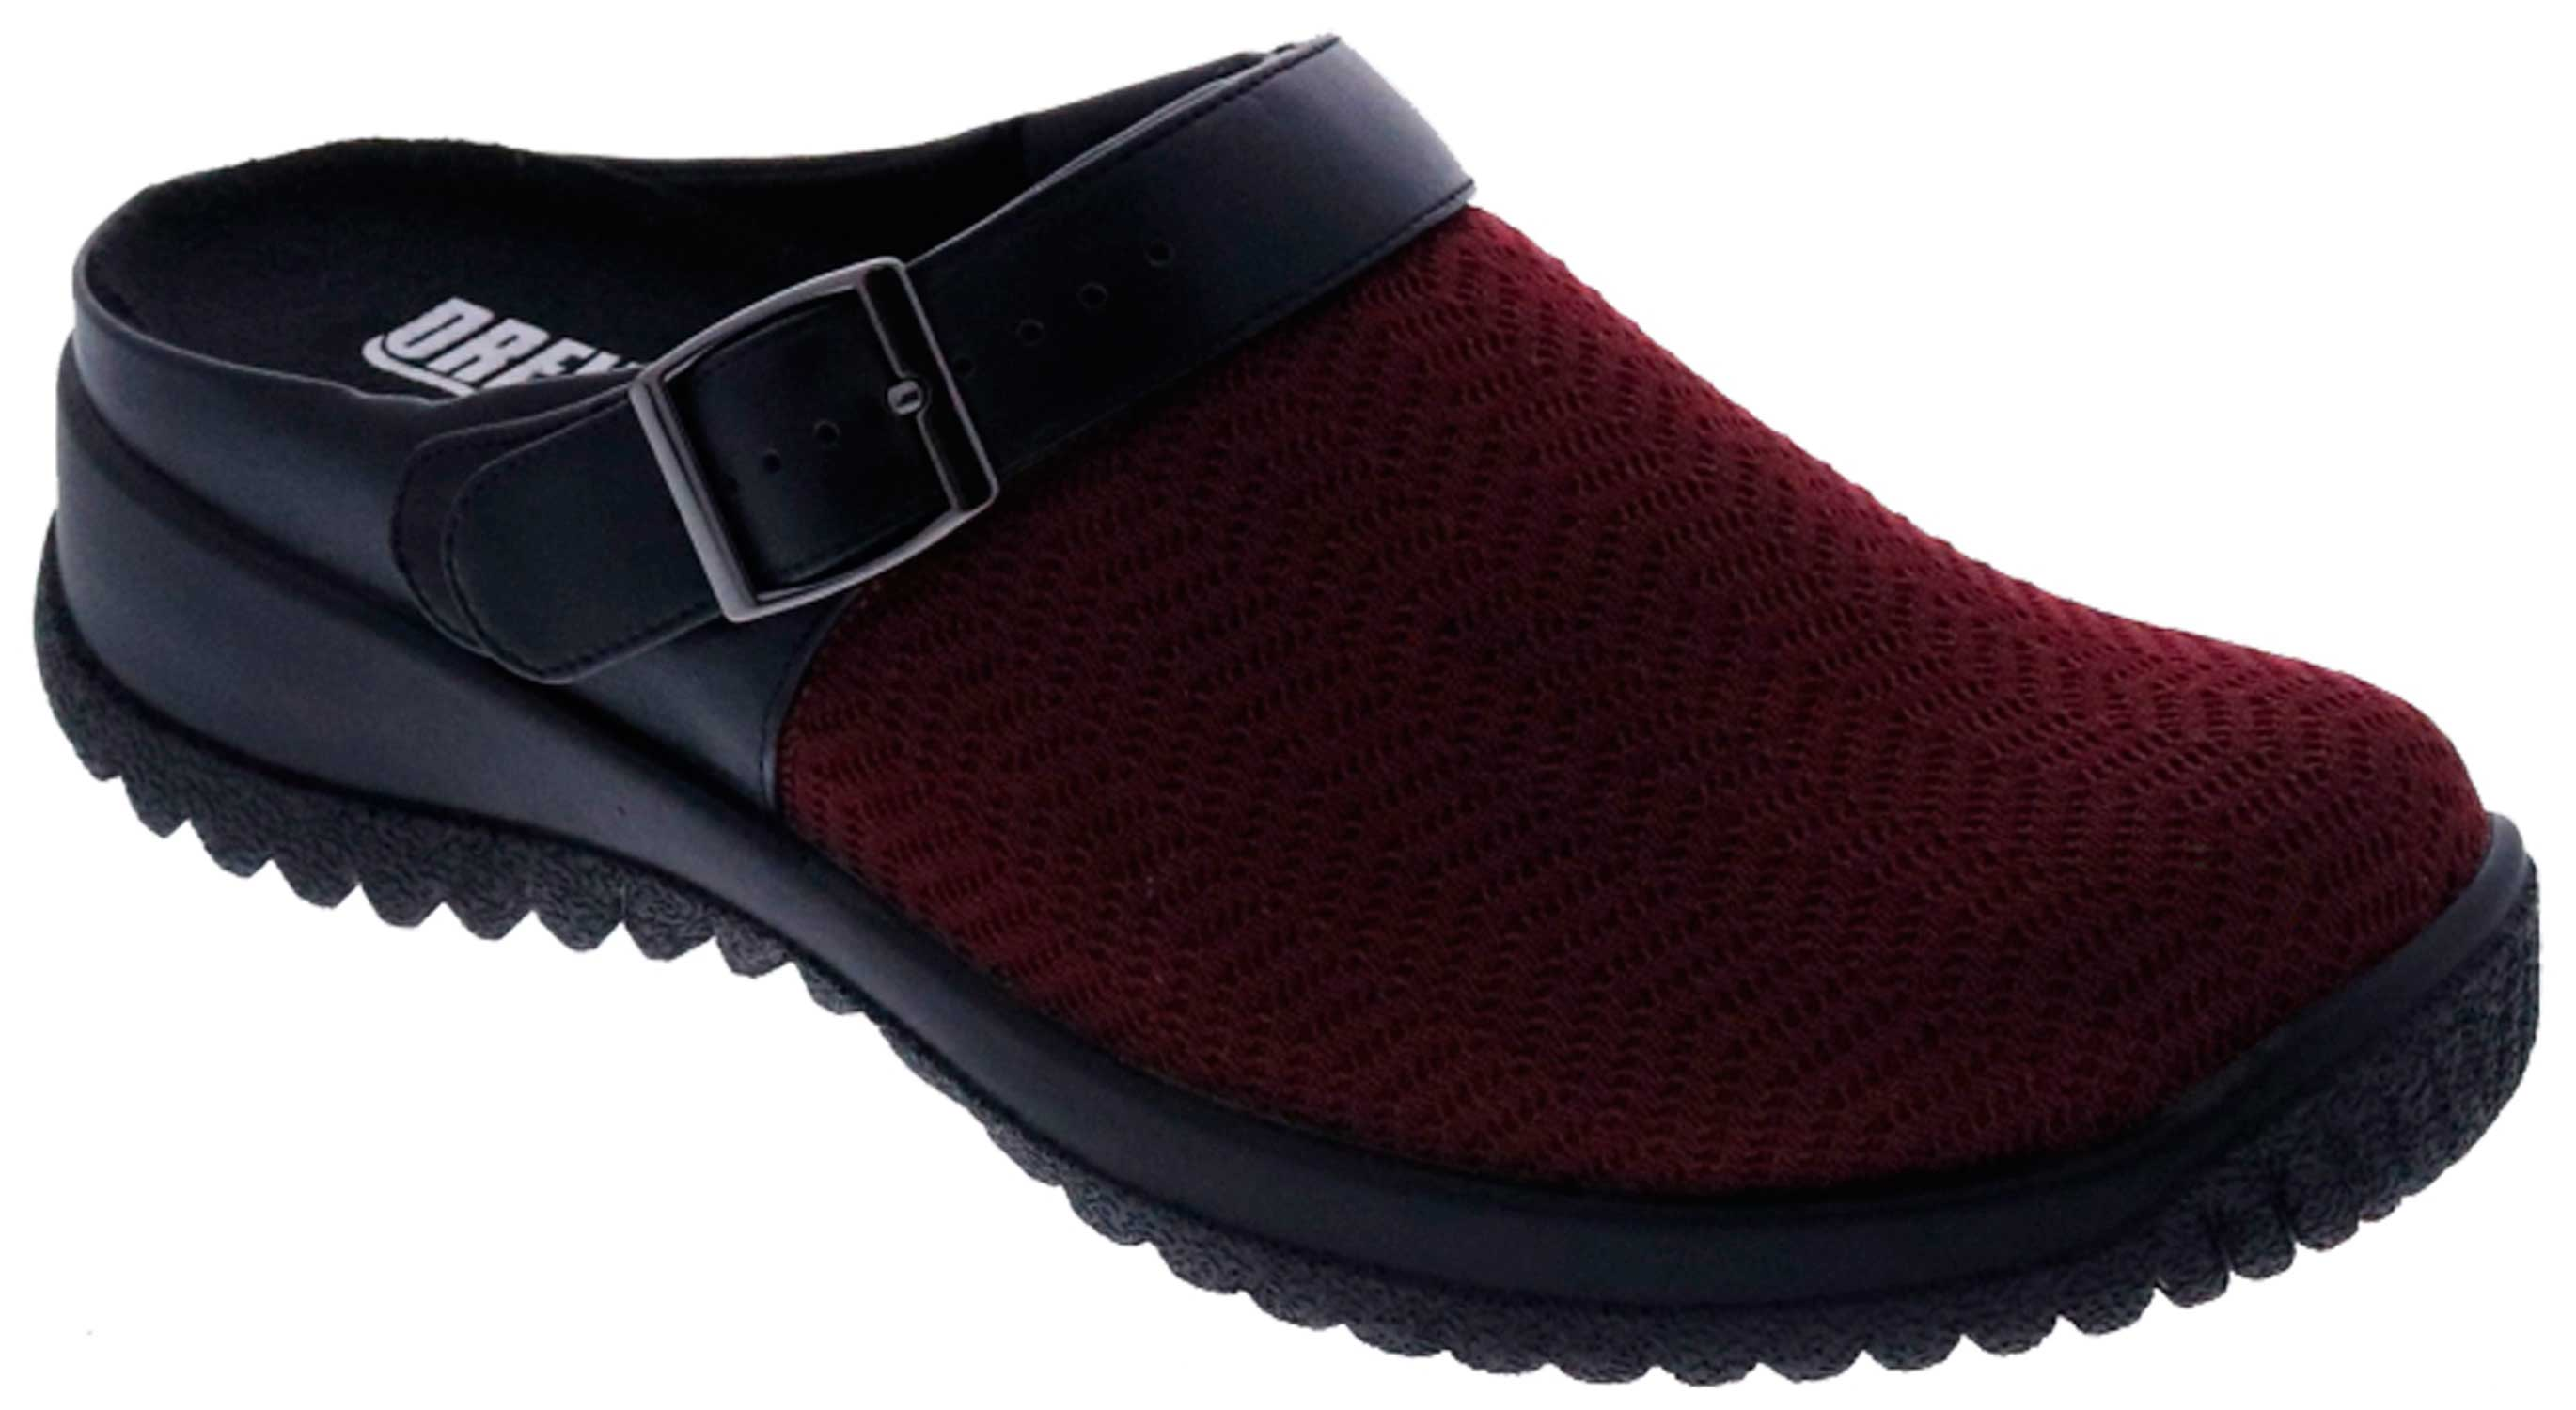 d772958e7ca The Drew Shoe - Savannah  Everyone loves the ease and comfort of the  Savannah shoe